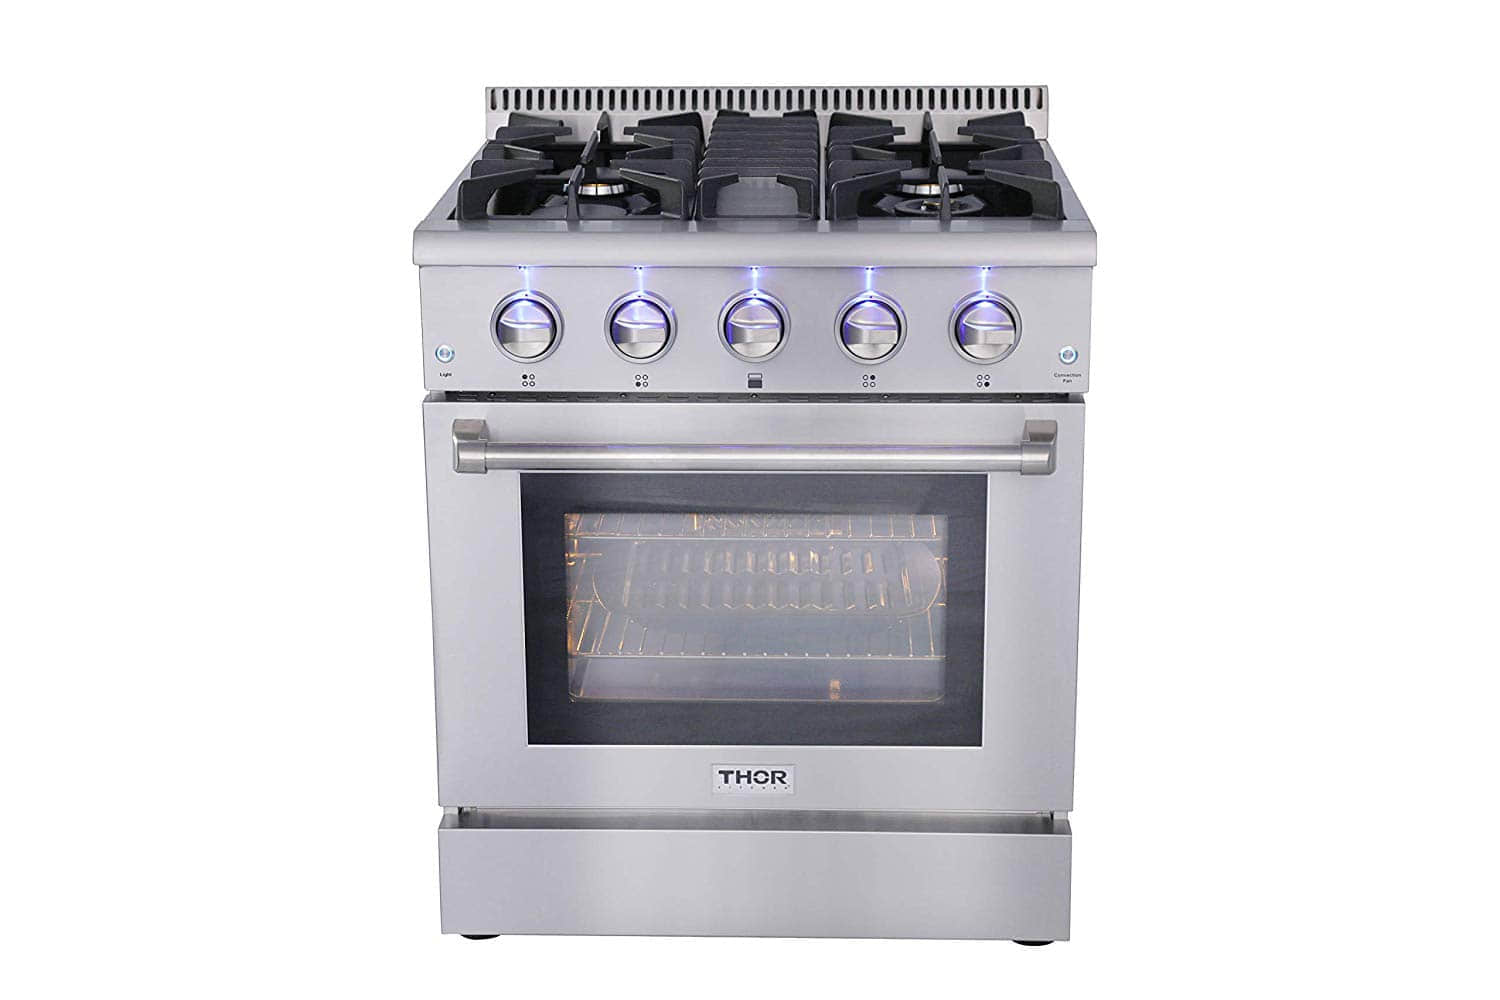 Best Gas Ranges Reviews: Top 3 Gas Ranges to buy